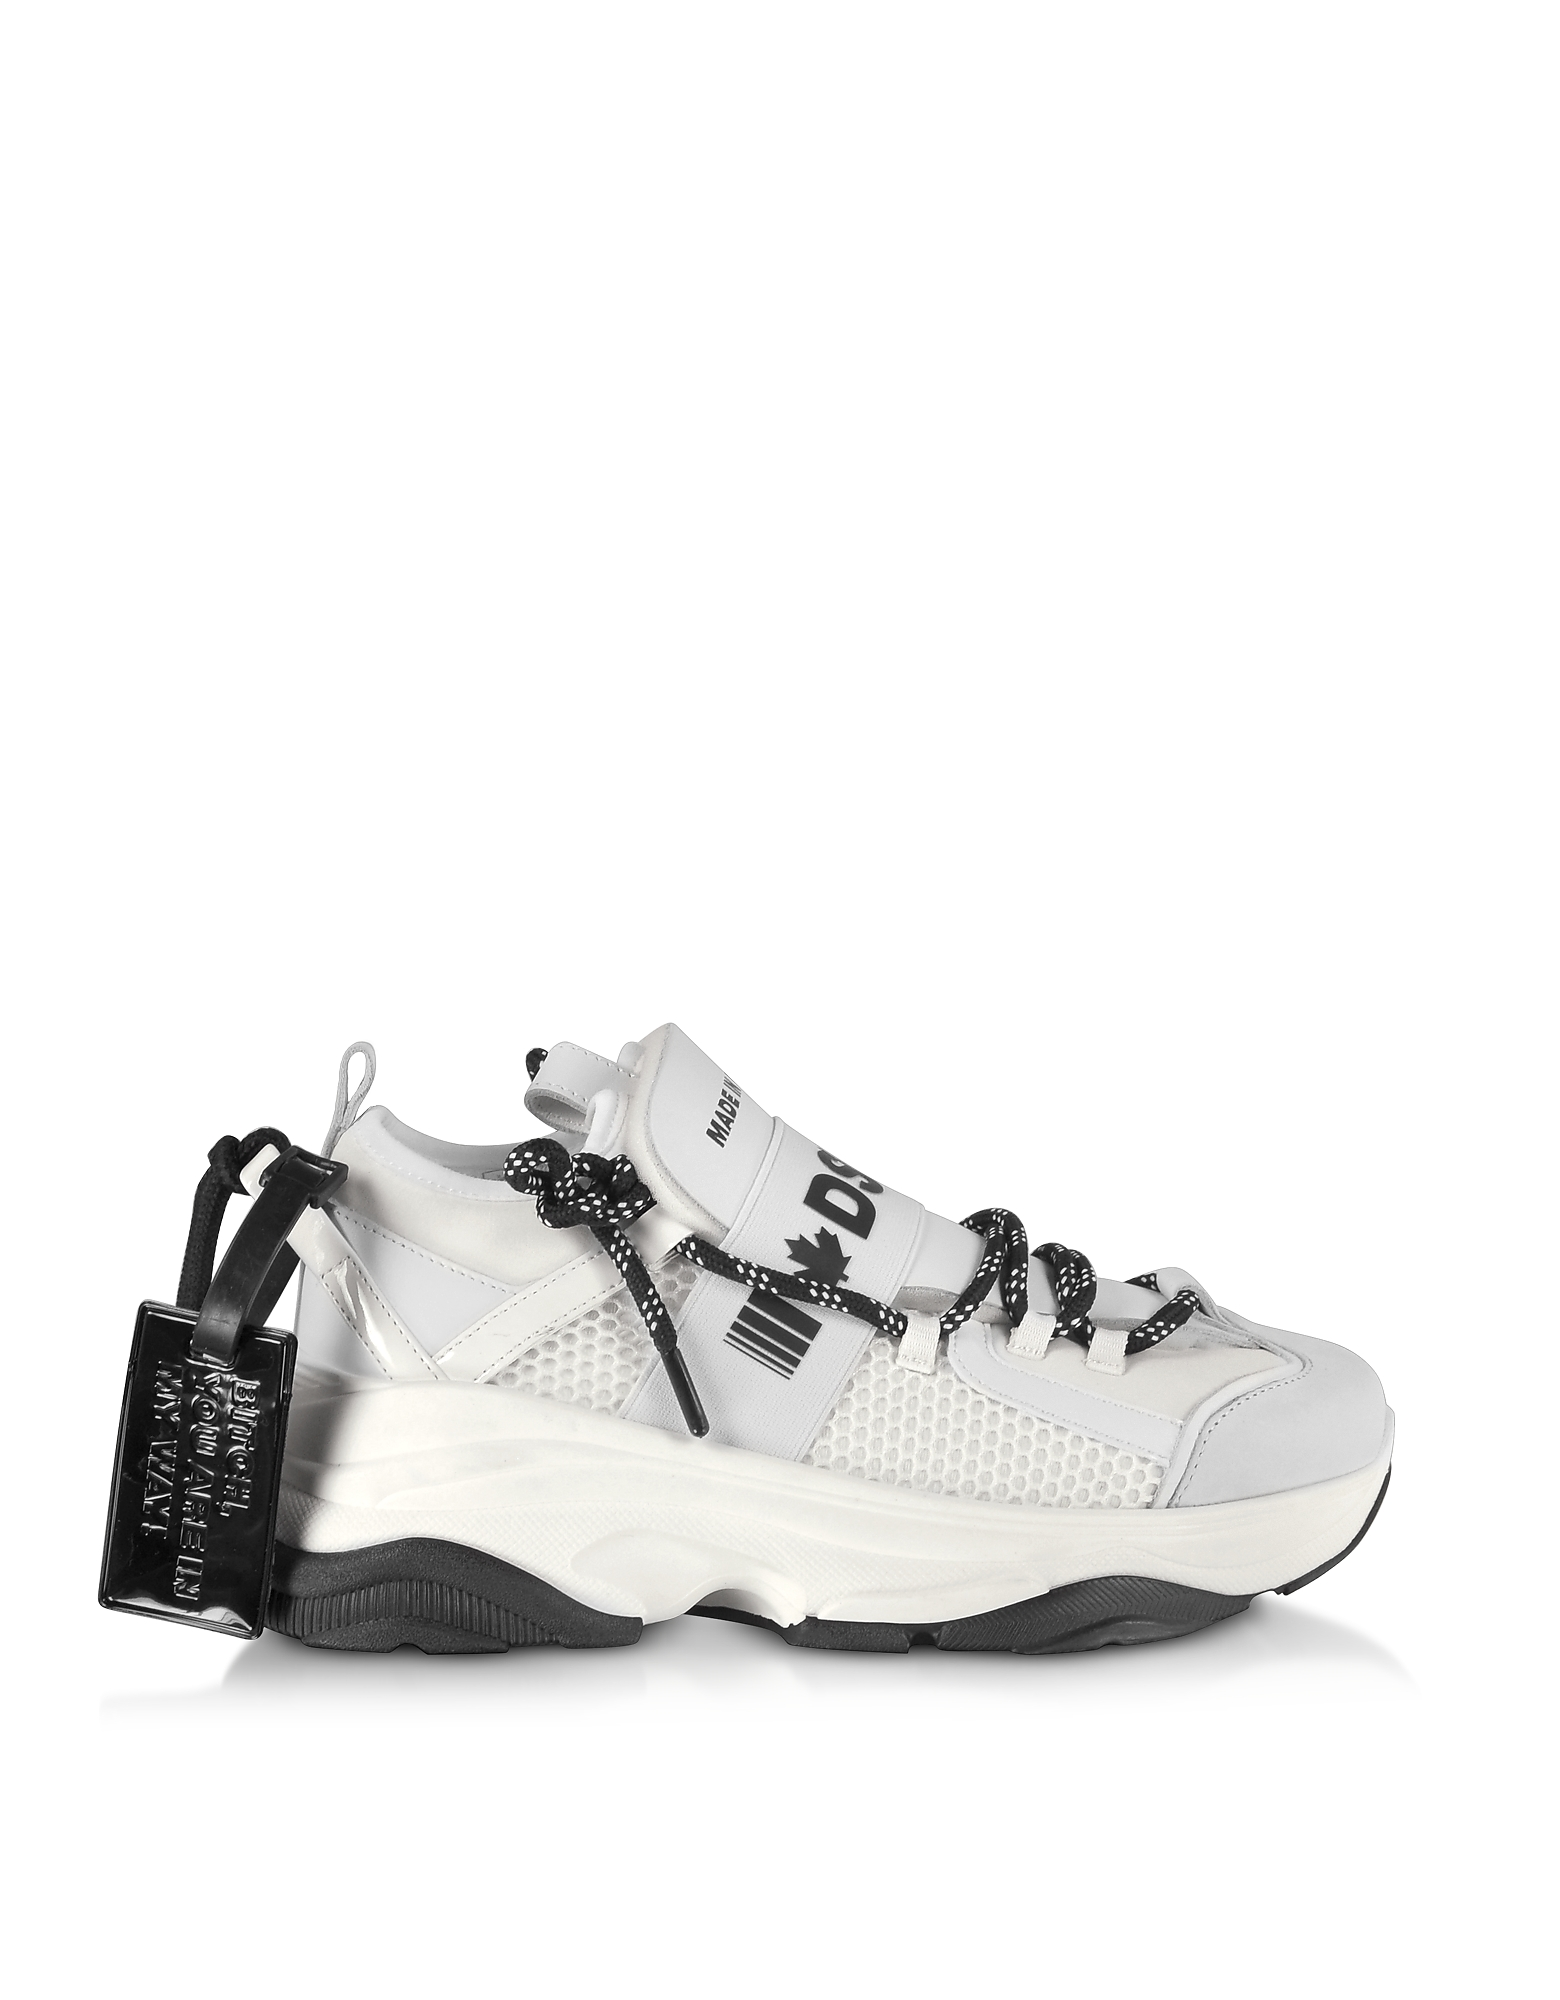 D-Bumpy Neoprene and Leather Women's Sneakers